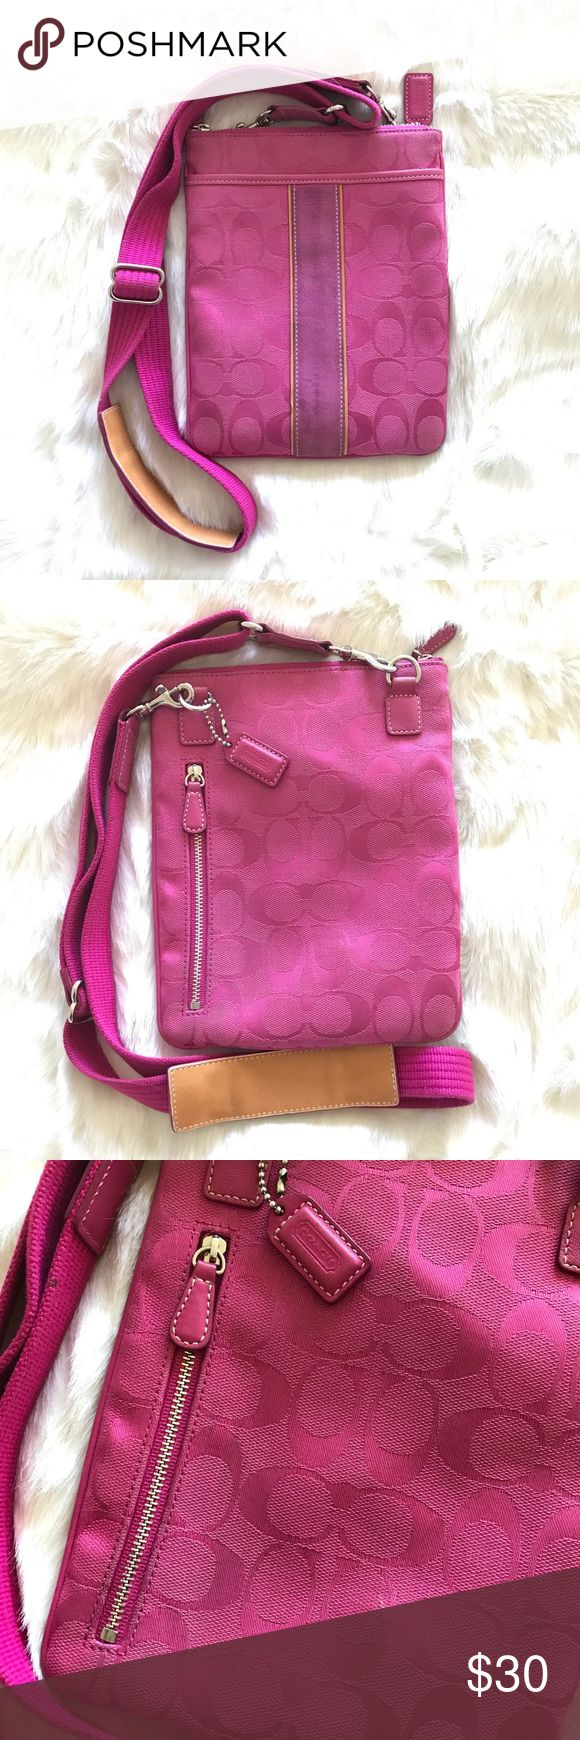 """Pink Coach Swingpack Crossbody bag This authentic bag was gently loved but still has room for many more fun outings to come! This bag is so comfortable, thanks to the adjustable leather shoulder band on the strap. There is some light discoloration on the suede stripe down the center front and also a little discoloration near the zipper on the back, which I tried to show in the pictures. It's very minor. Flap on front of bag, side zipper on back, and top zipper for main compartment. 18"""" drop…"""